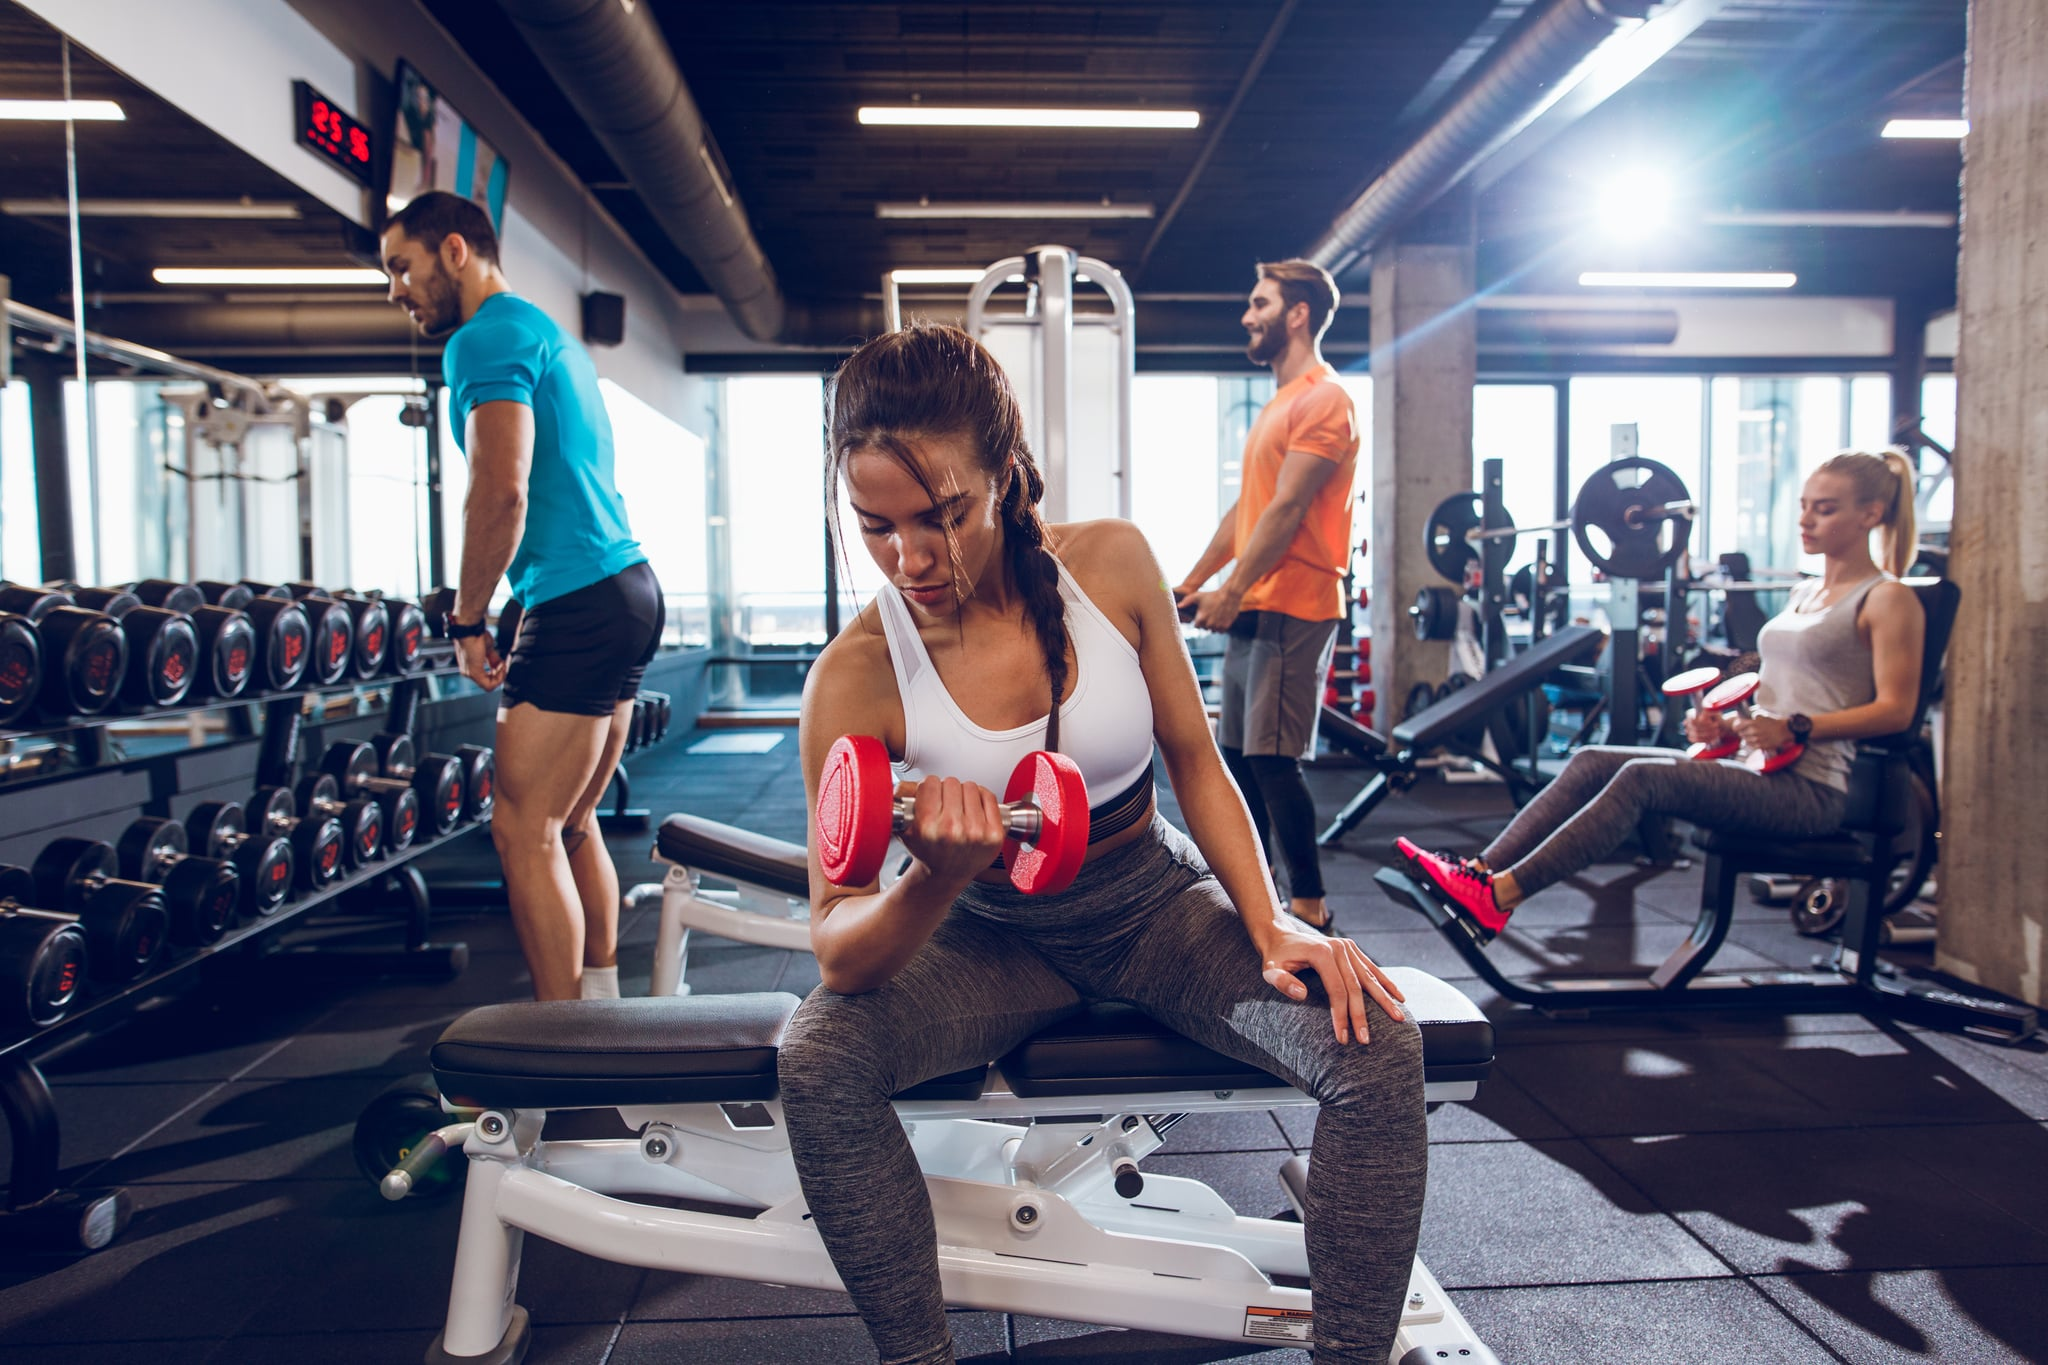 Young woman working out with dumbbells at gym